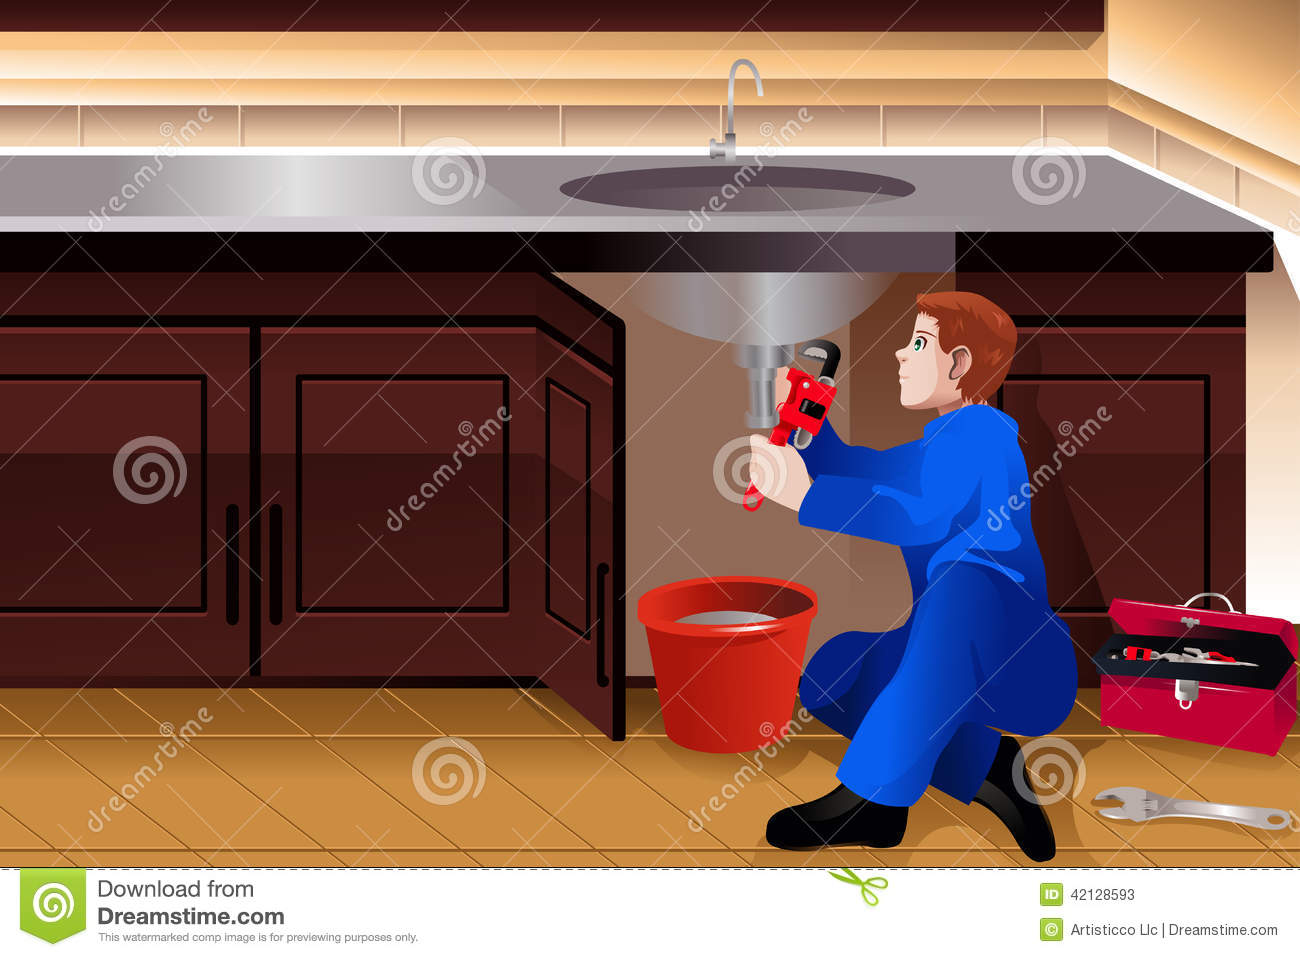 Plumber Fixing A Leaky Faucet Stock Vector - Illustration of ...